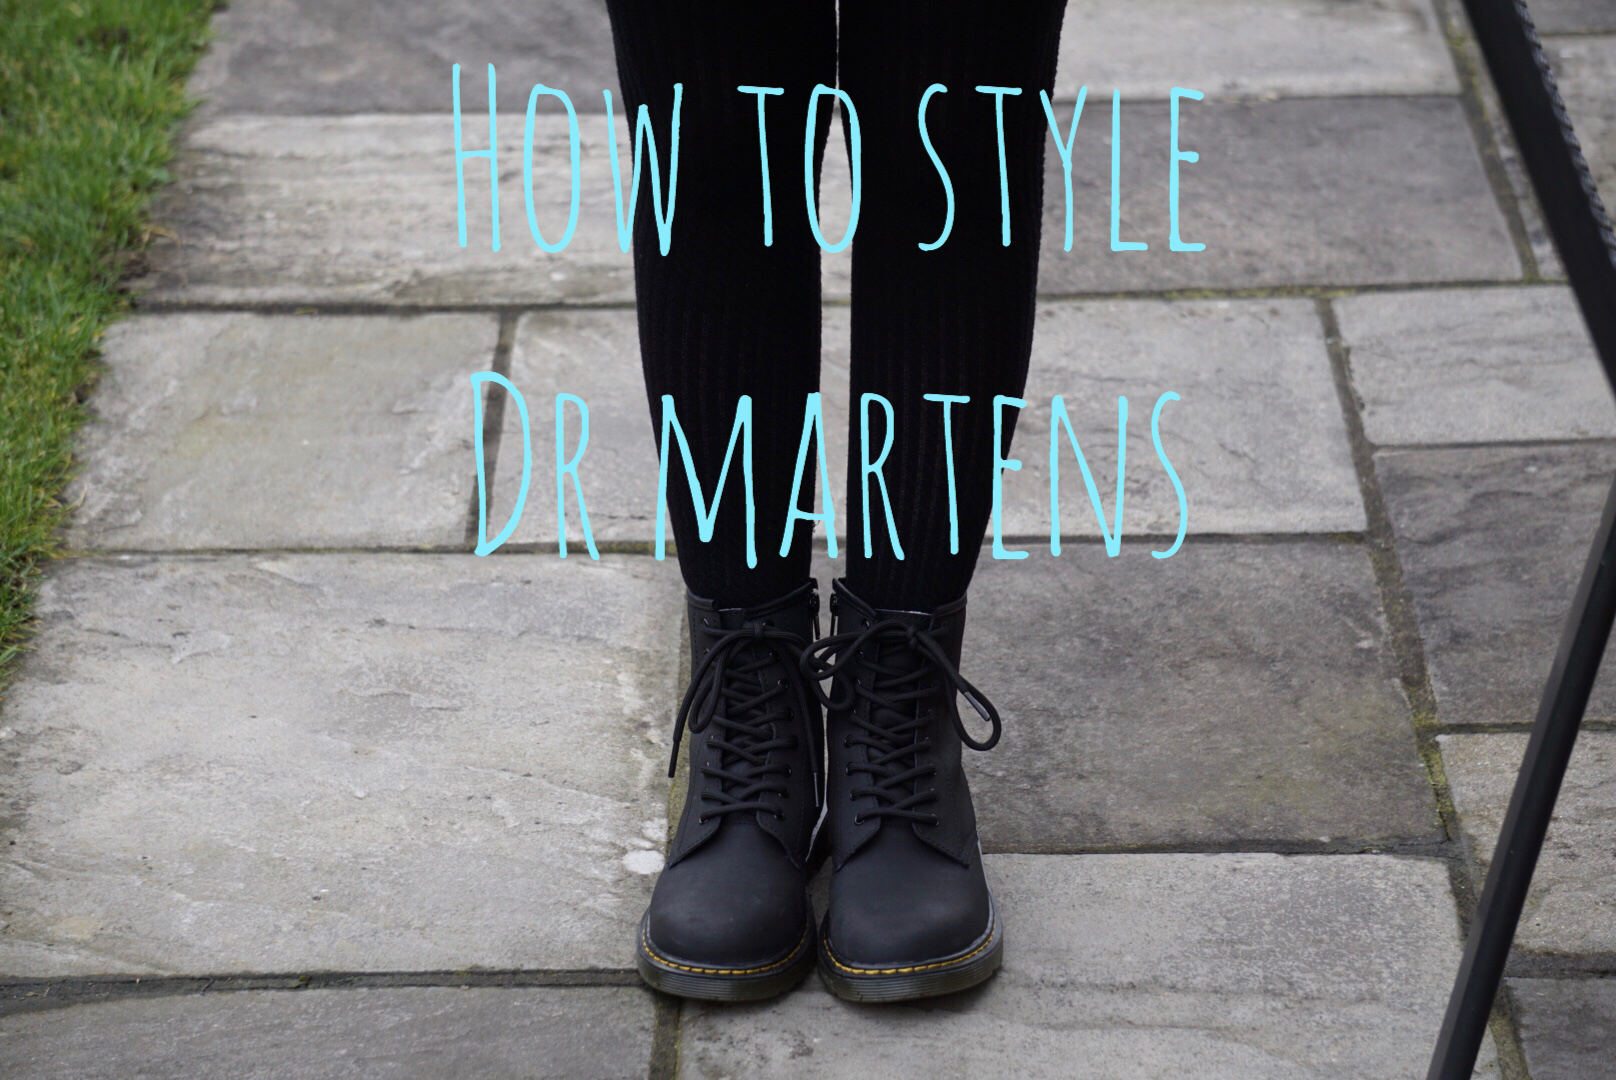 Dr Martens Fashion